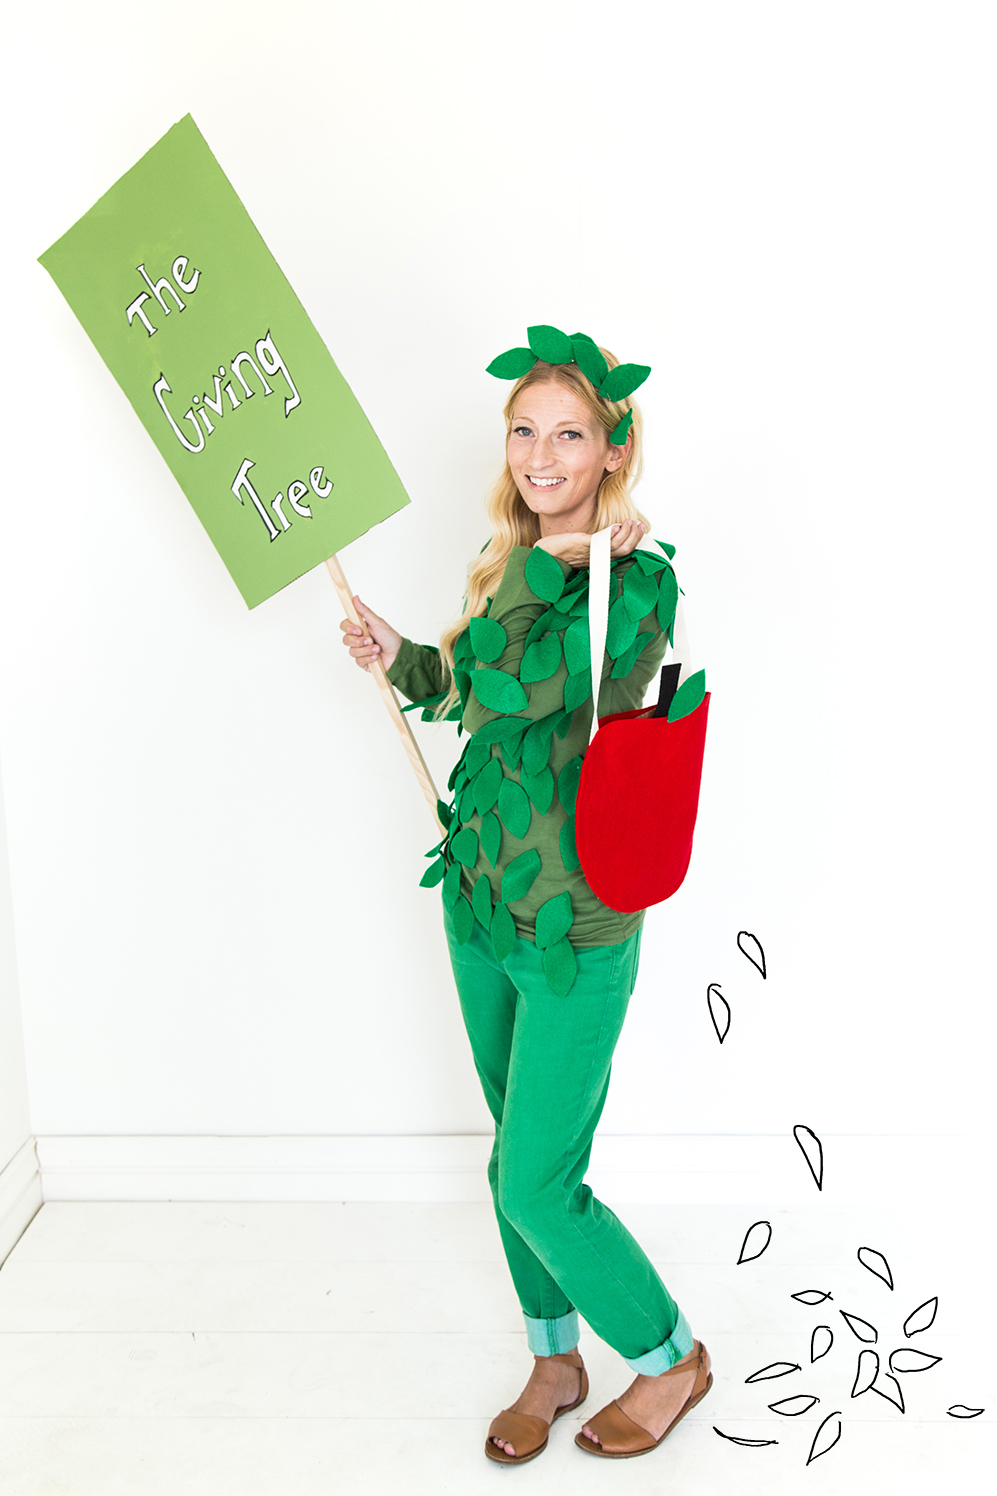 the giving tree halloween costumes for parent and child along with a coordinating trick or - Apple Halloween Costumes